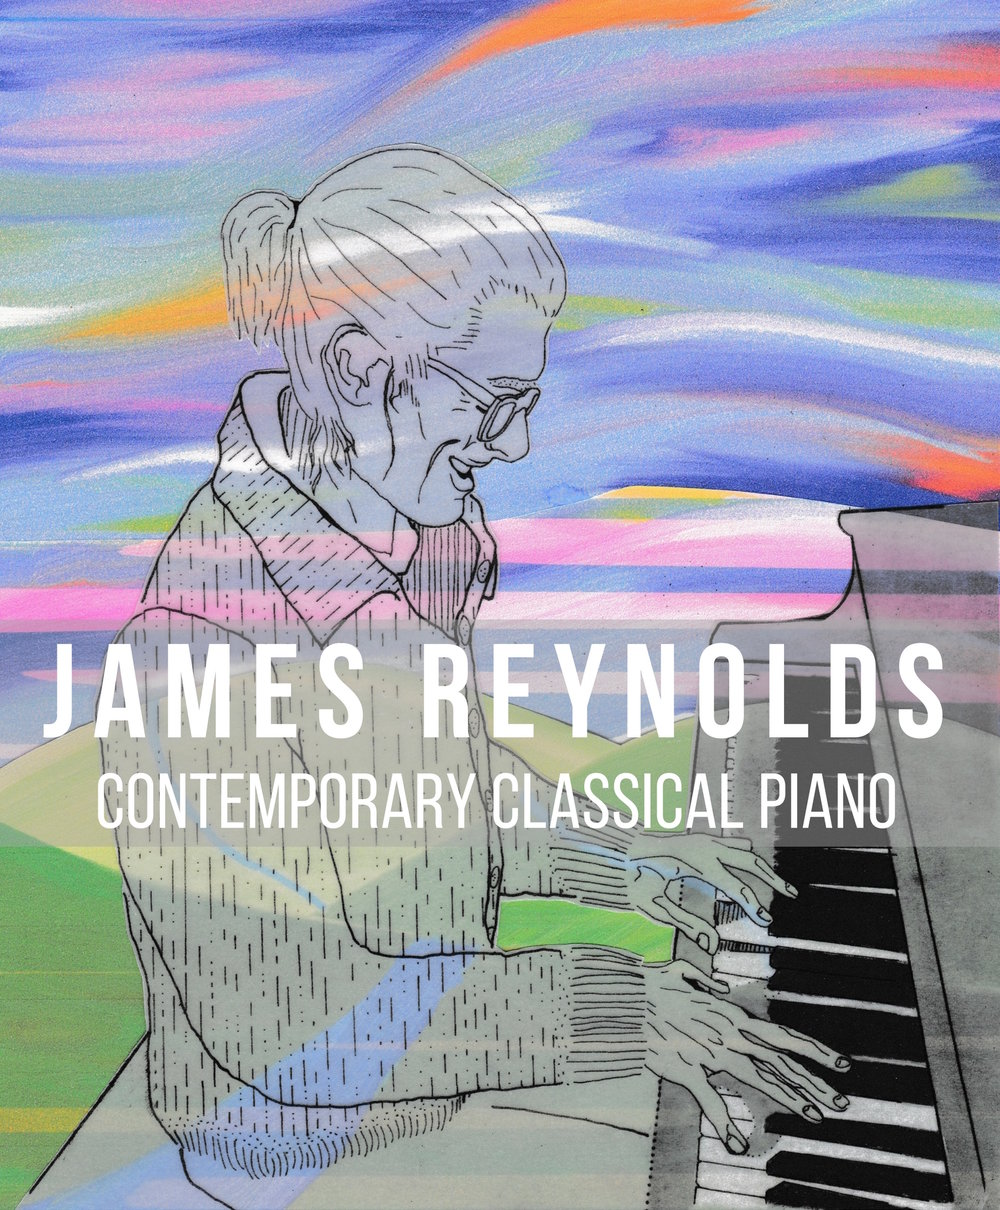 Artwork Poster - James Reynolds Piano Music.jpg